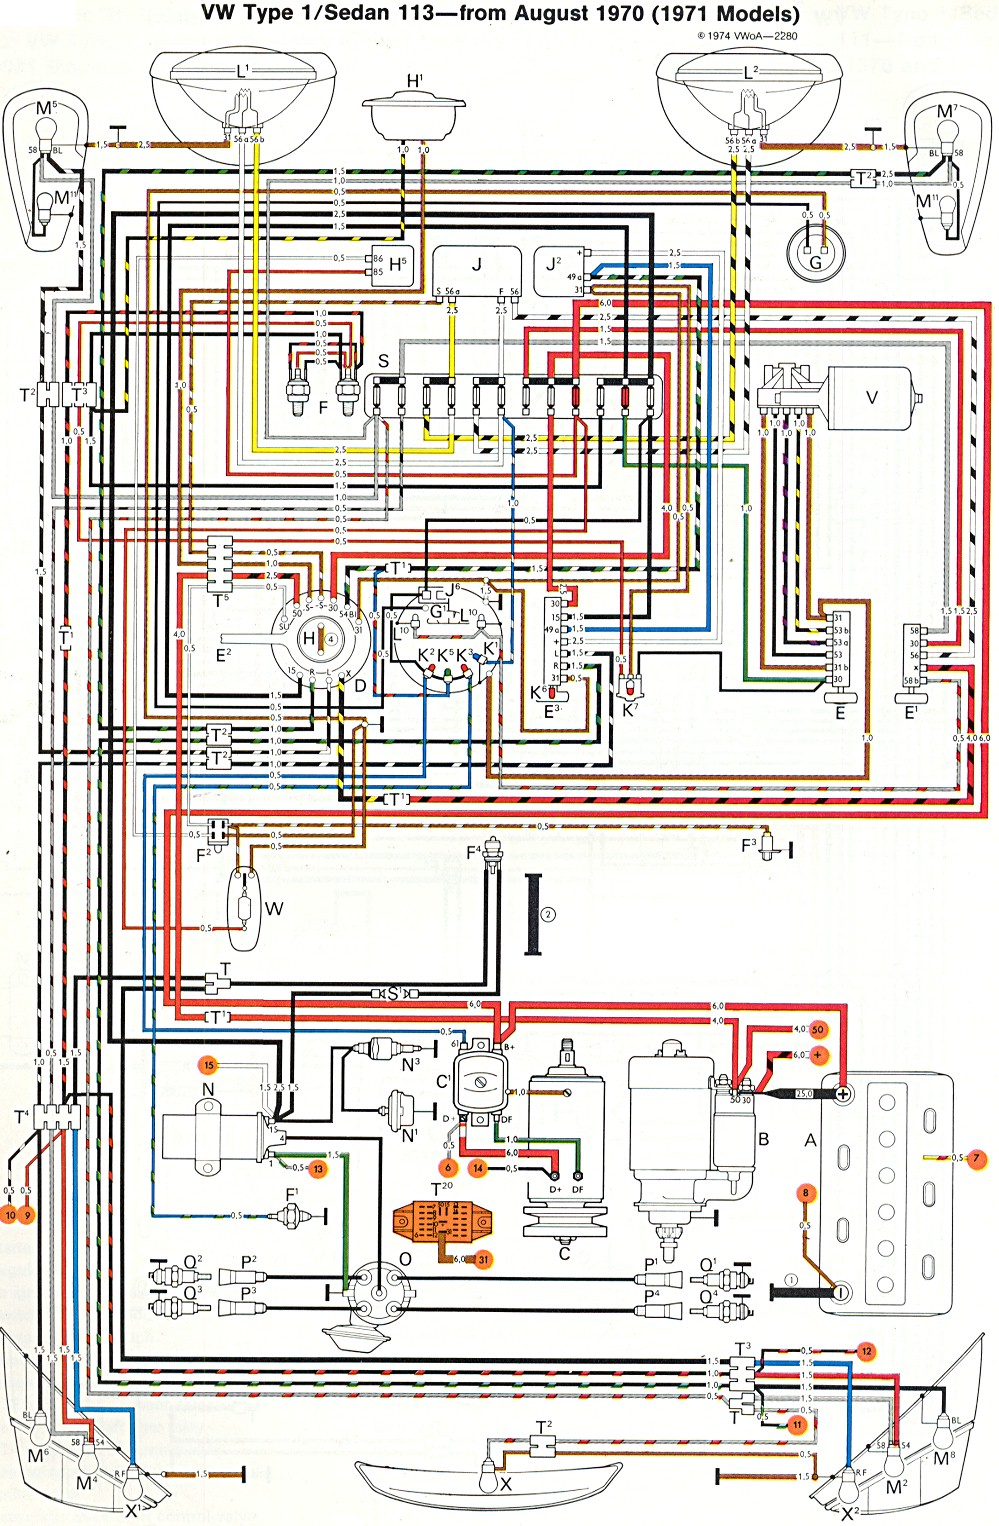 bug_super_71 2002 vw beetle wiring diagram altenator wiring diagram 2002 vw 1964 VW Beetle Wiring Diagram at creativeand.co